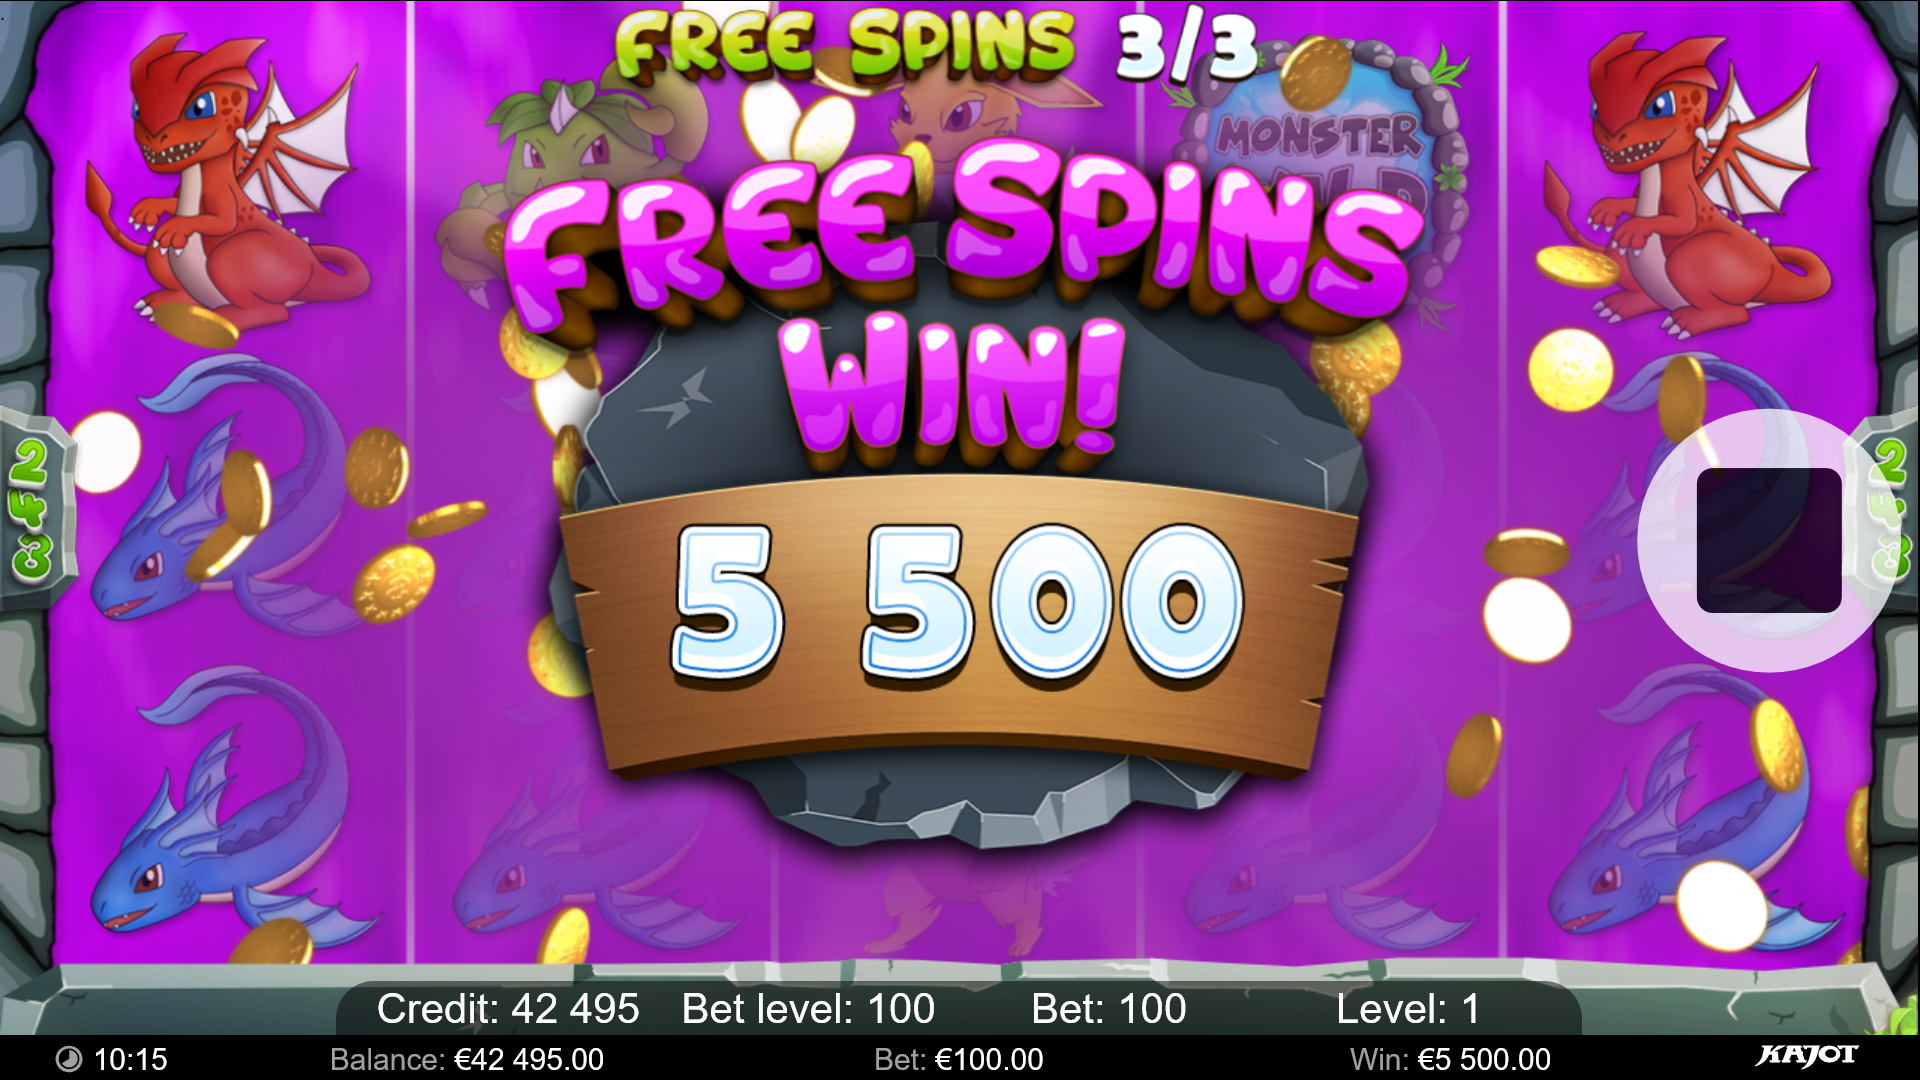 MS freespins